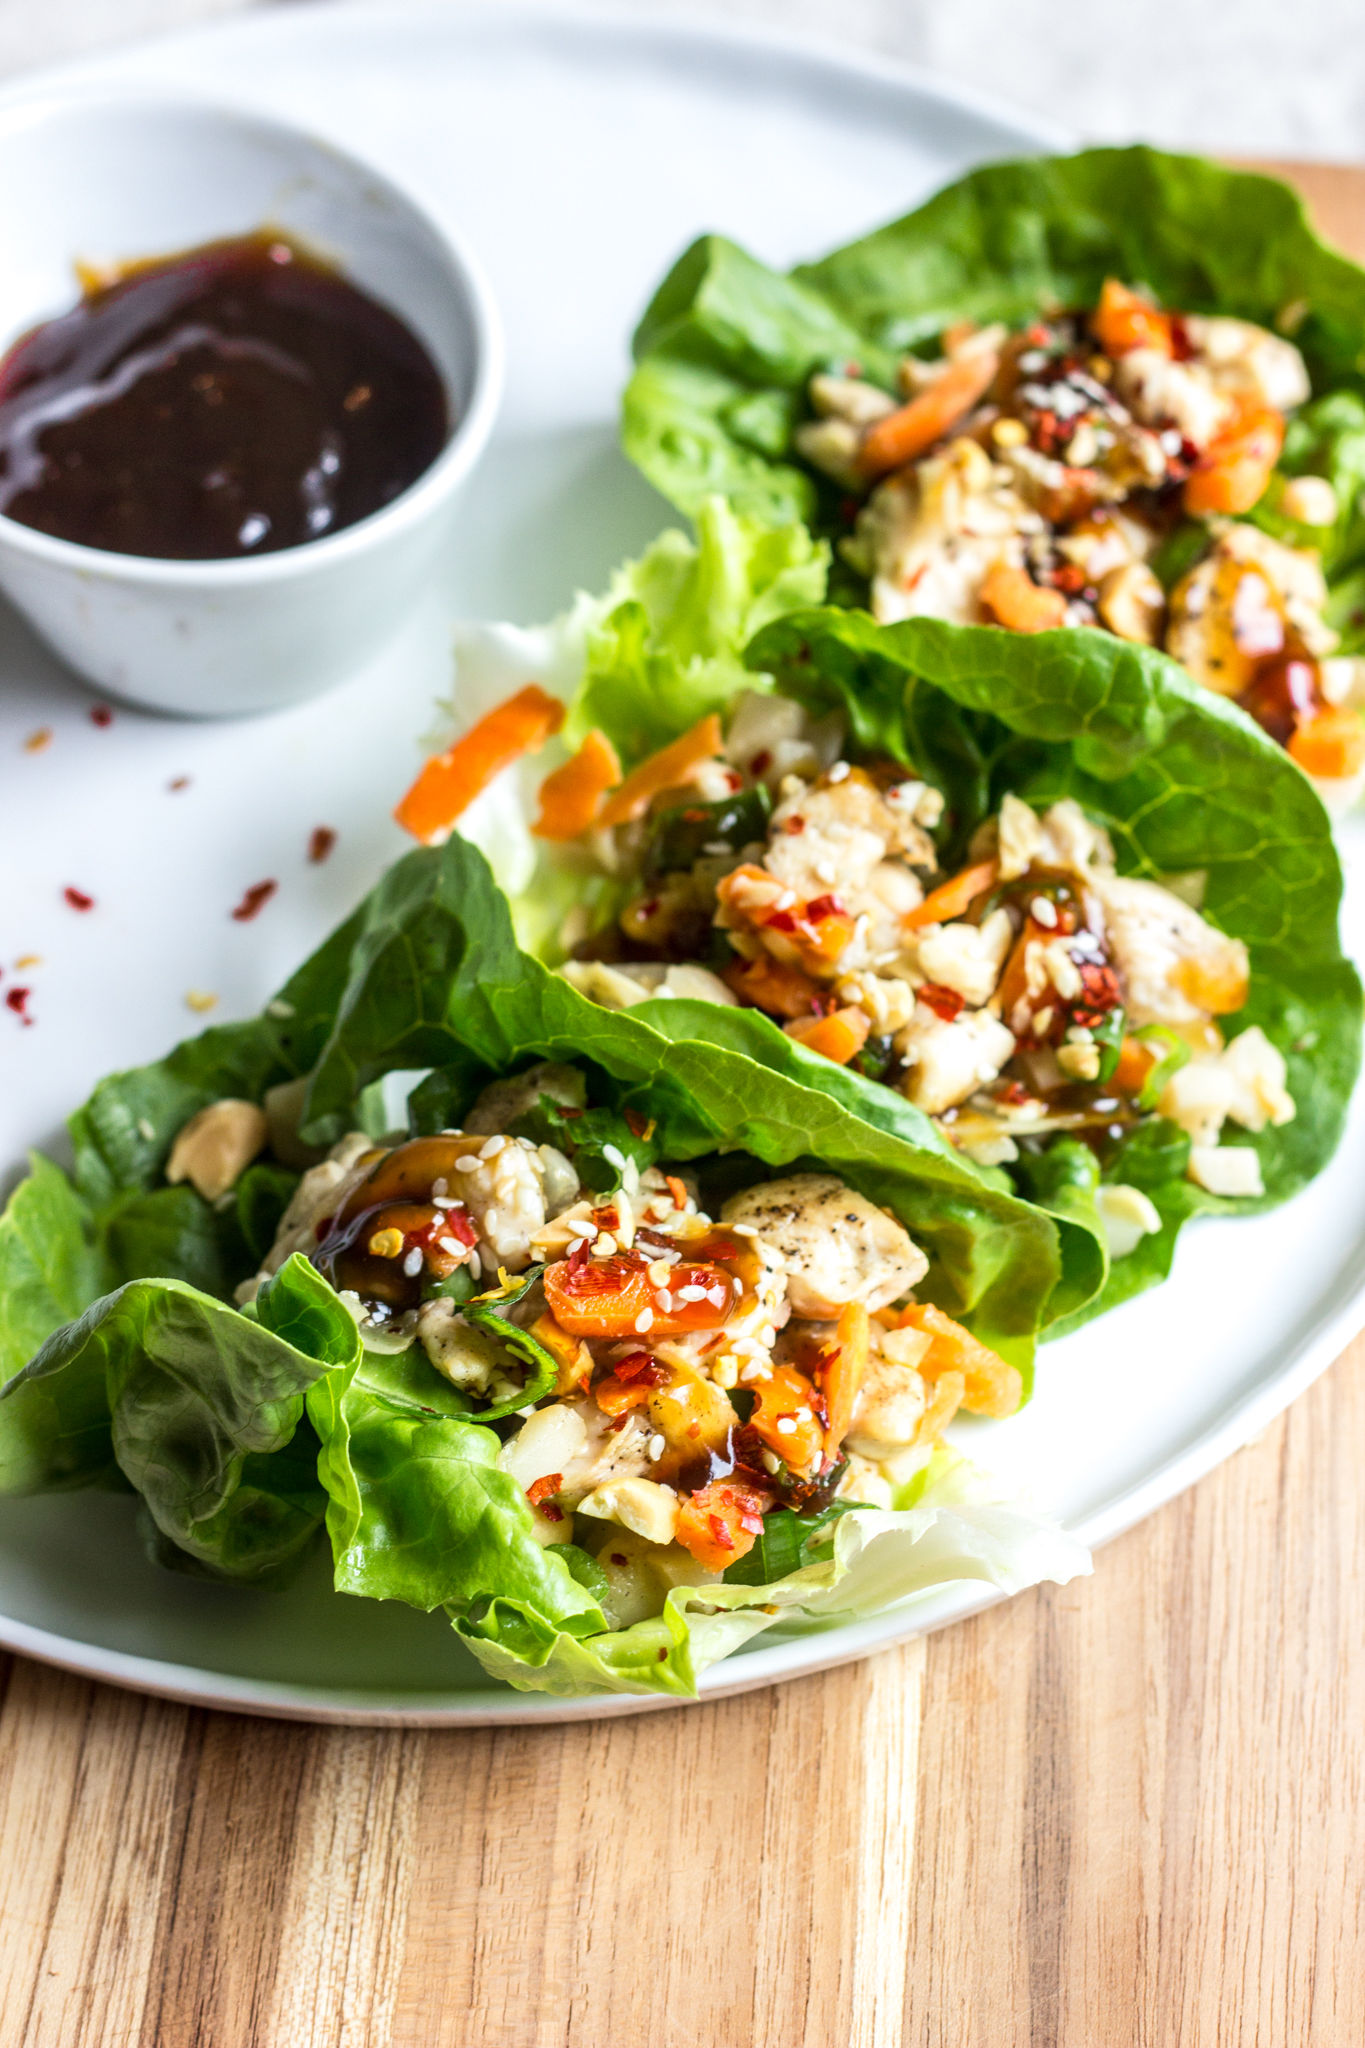 Teriyaki Chicken Lettuce Wraps- bursting with Asian flavor, low carb, and done in under 30 minutes!